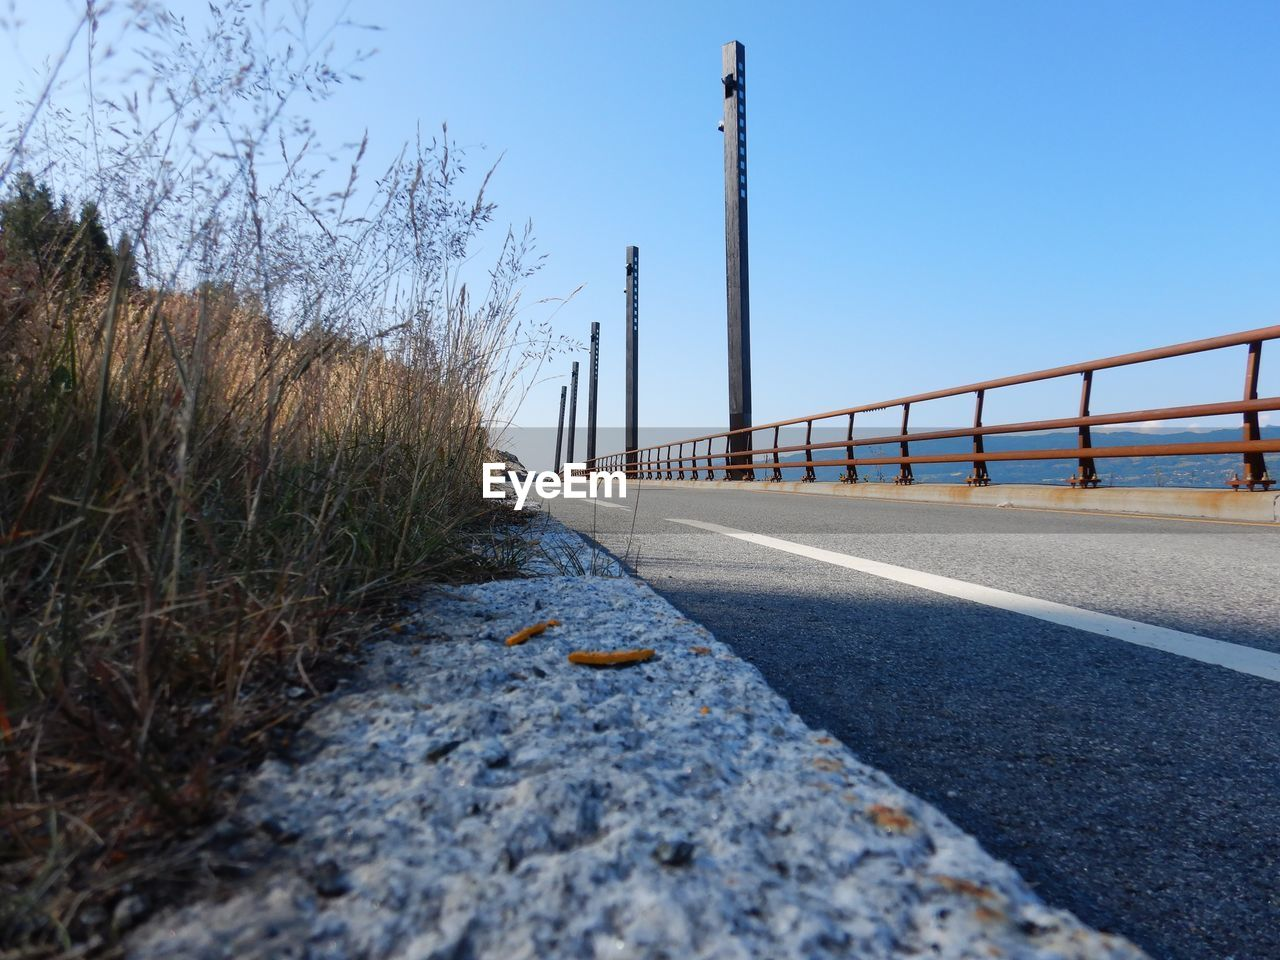 transportation, sky, road, clear sky, nature, no people, built structure, architecture, connection, day, direction, the way forward, plant, bridge, bridge - man made structure, outdoors, railing, diminishing perspective, tree, sunlight, surface level